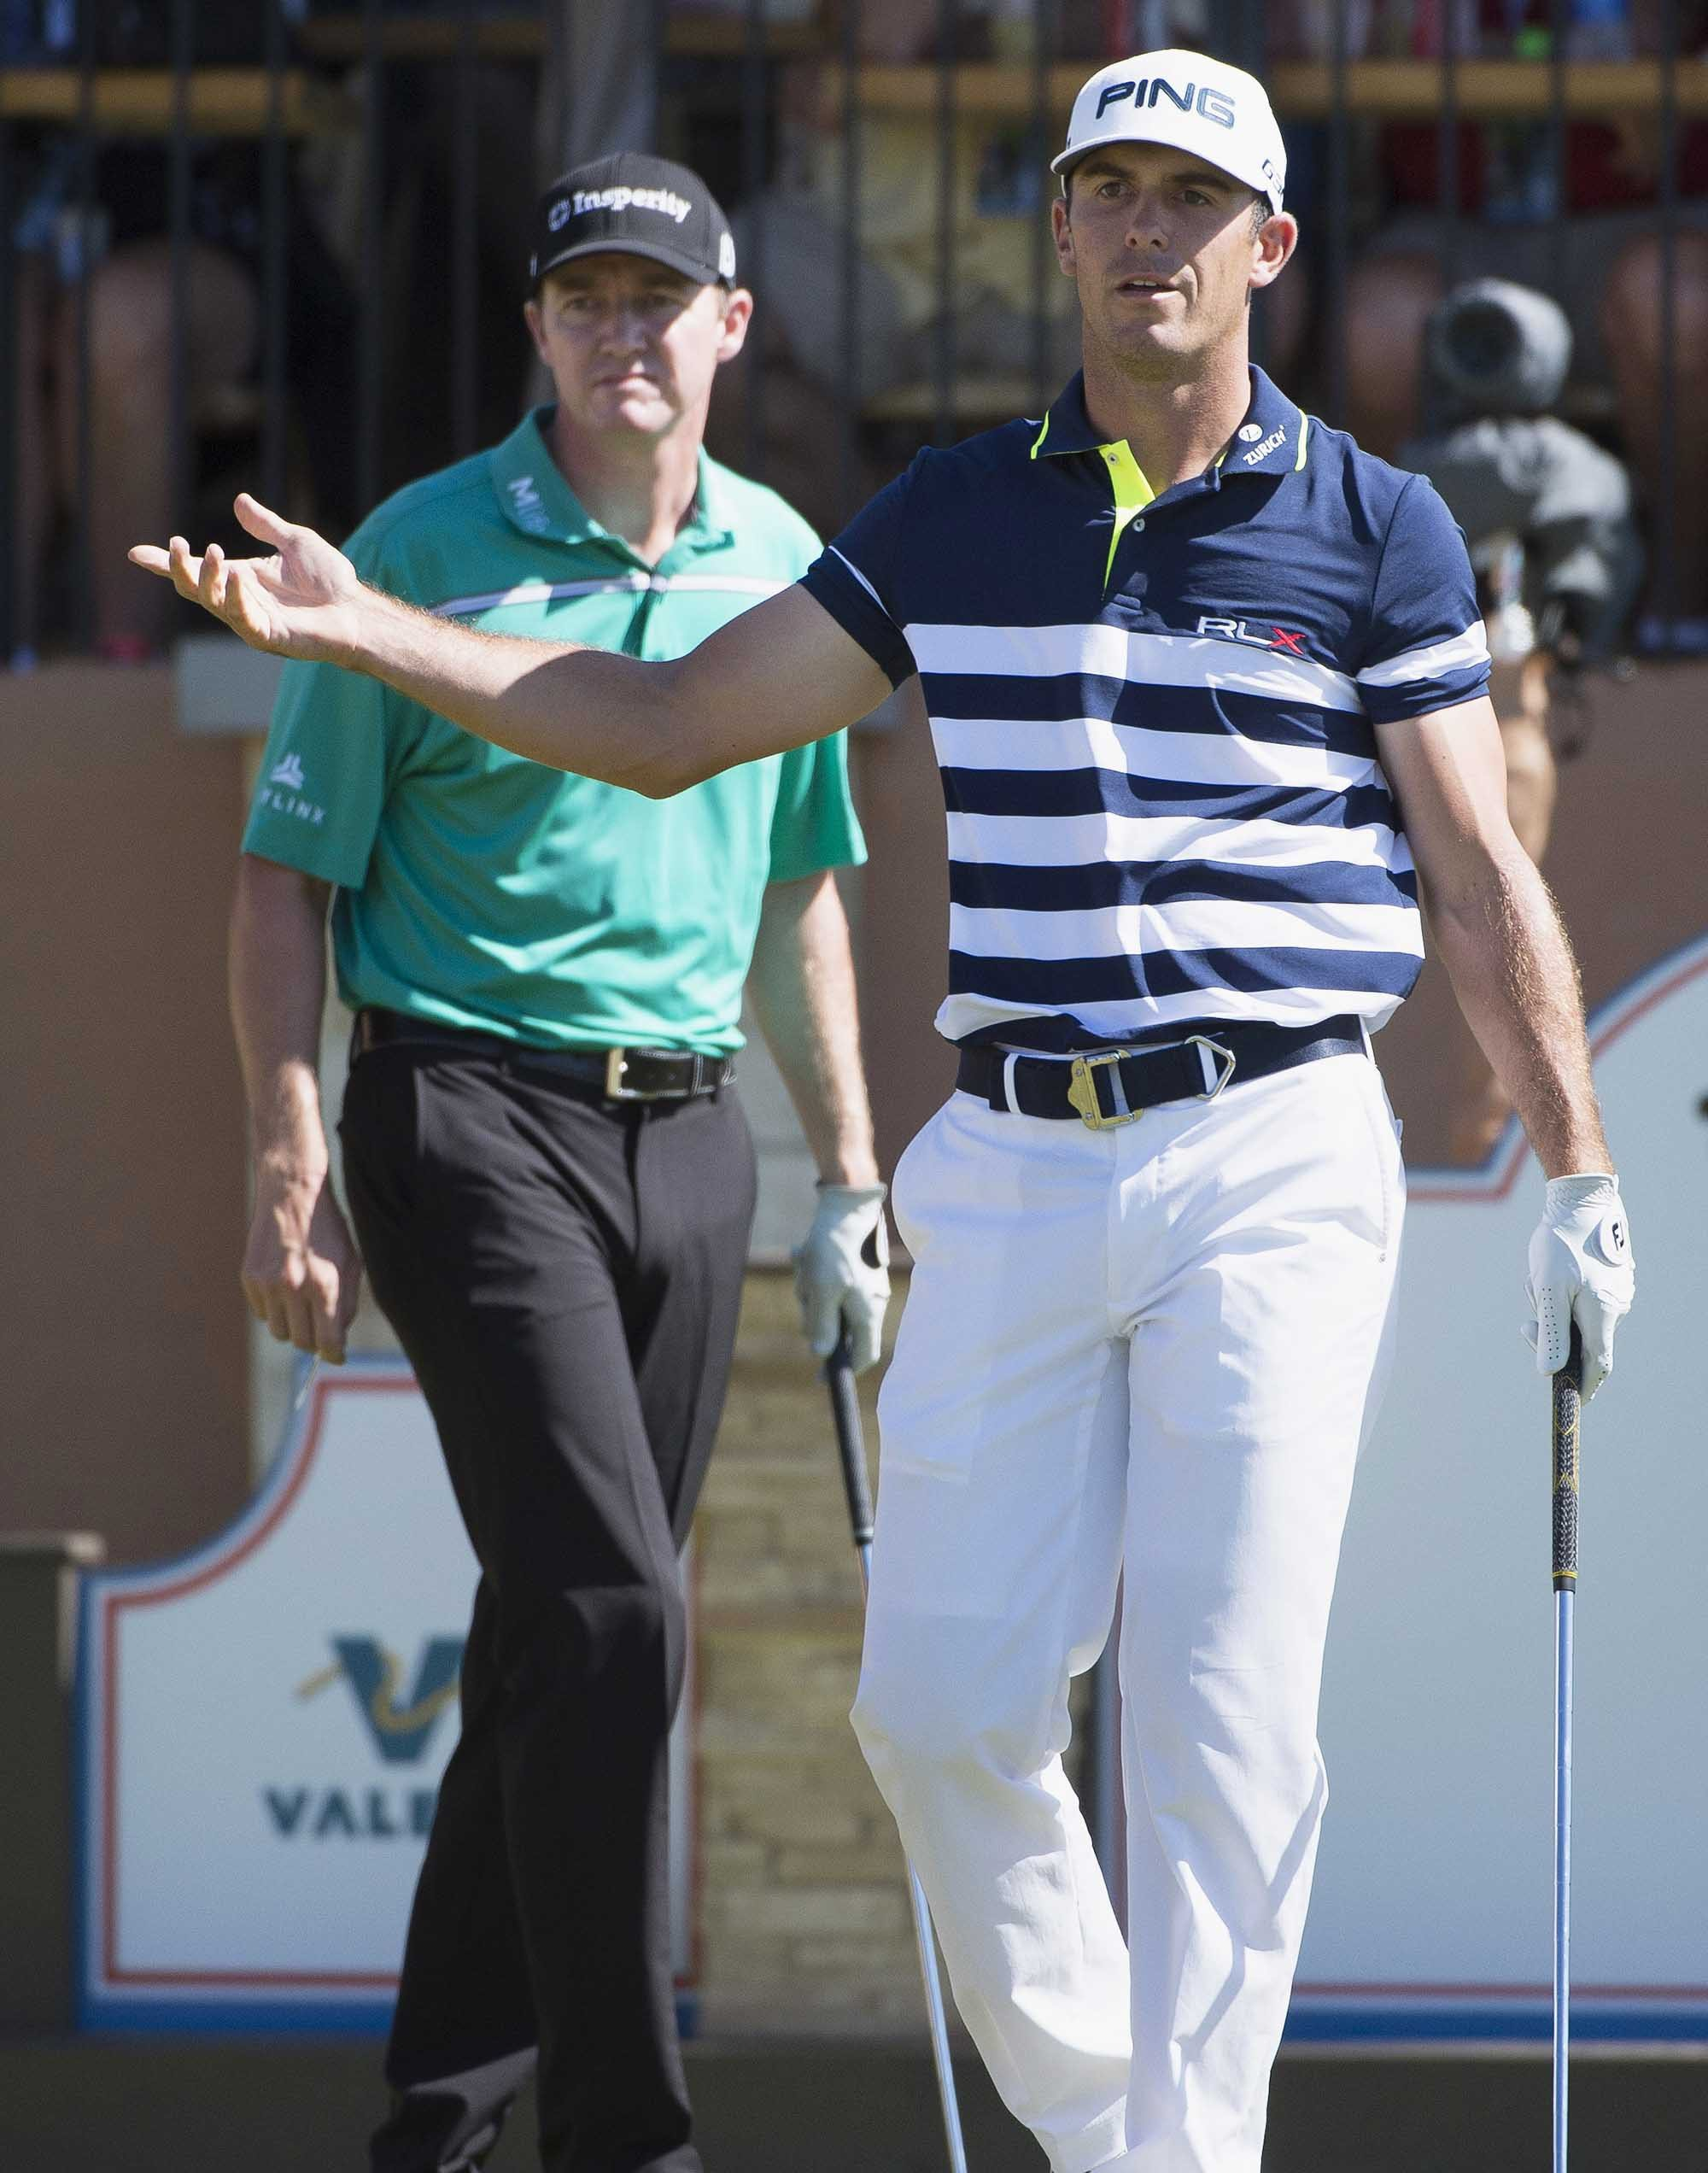 Darren Abate/APBilly Horschel wants the golf world to know there's an abundance of young talent on the PGA Tour.